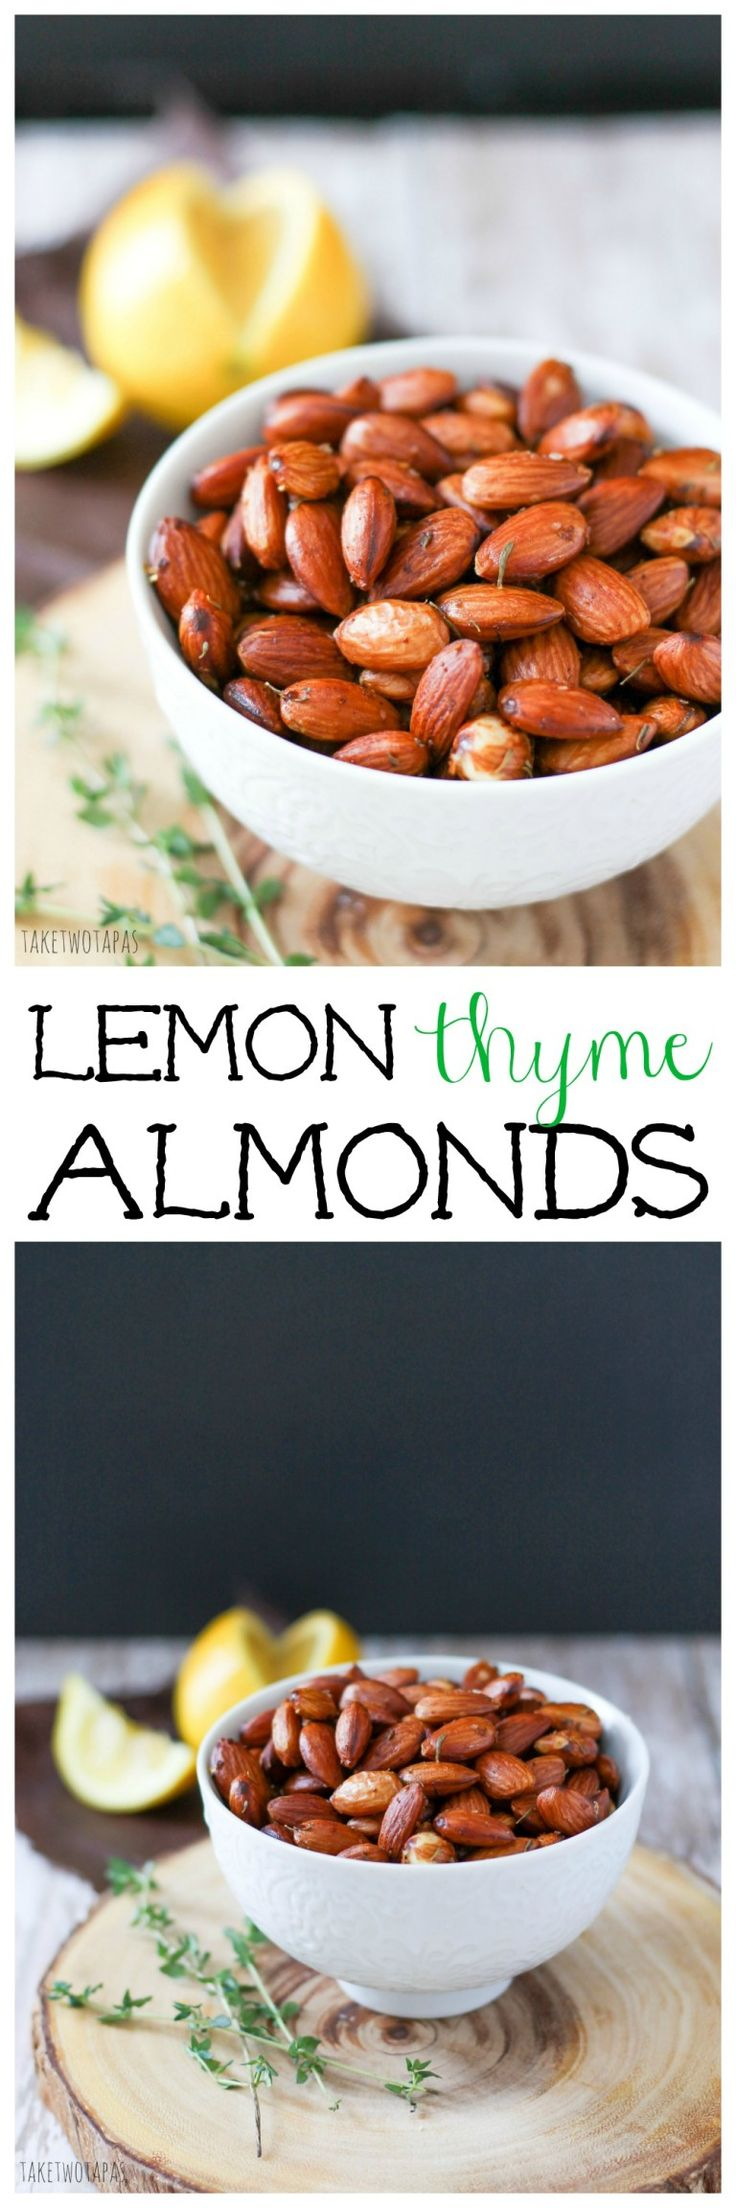 Need a healthy snack? I Toasted almonds are perfect! They are nutty and buttery. The bright flavor lemon cuts through the richness and the fresh thyme add some floral notes. These Lemon Thyme almonds are a great snack to keep you full between mealtimes! Lemon Thyme Almonds Recipe | Take Two Tapas